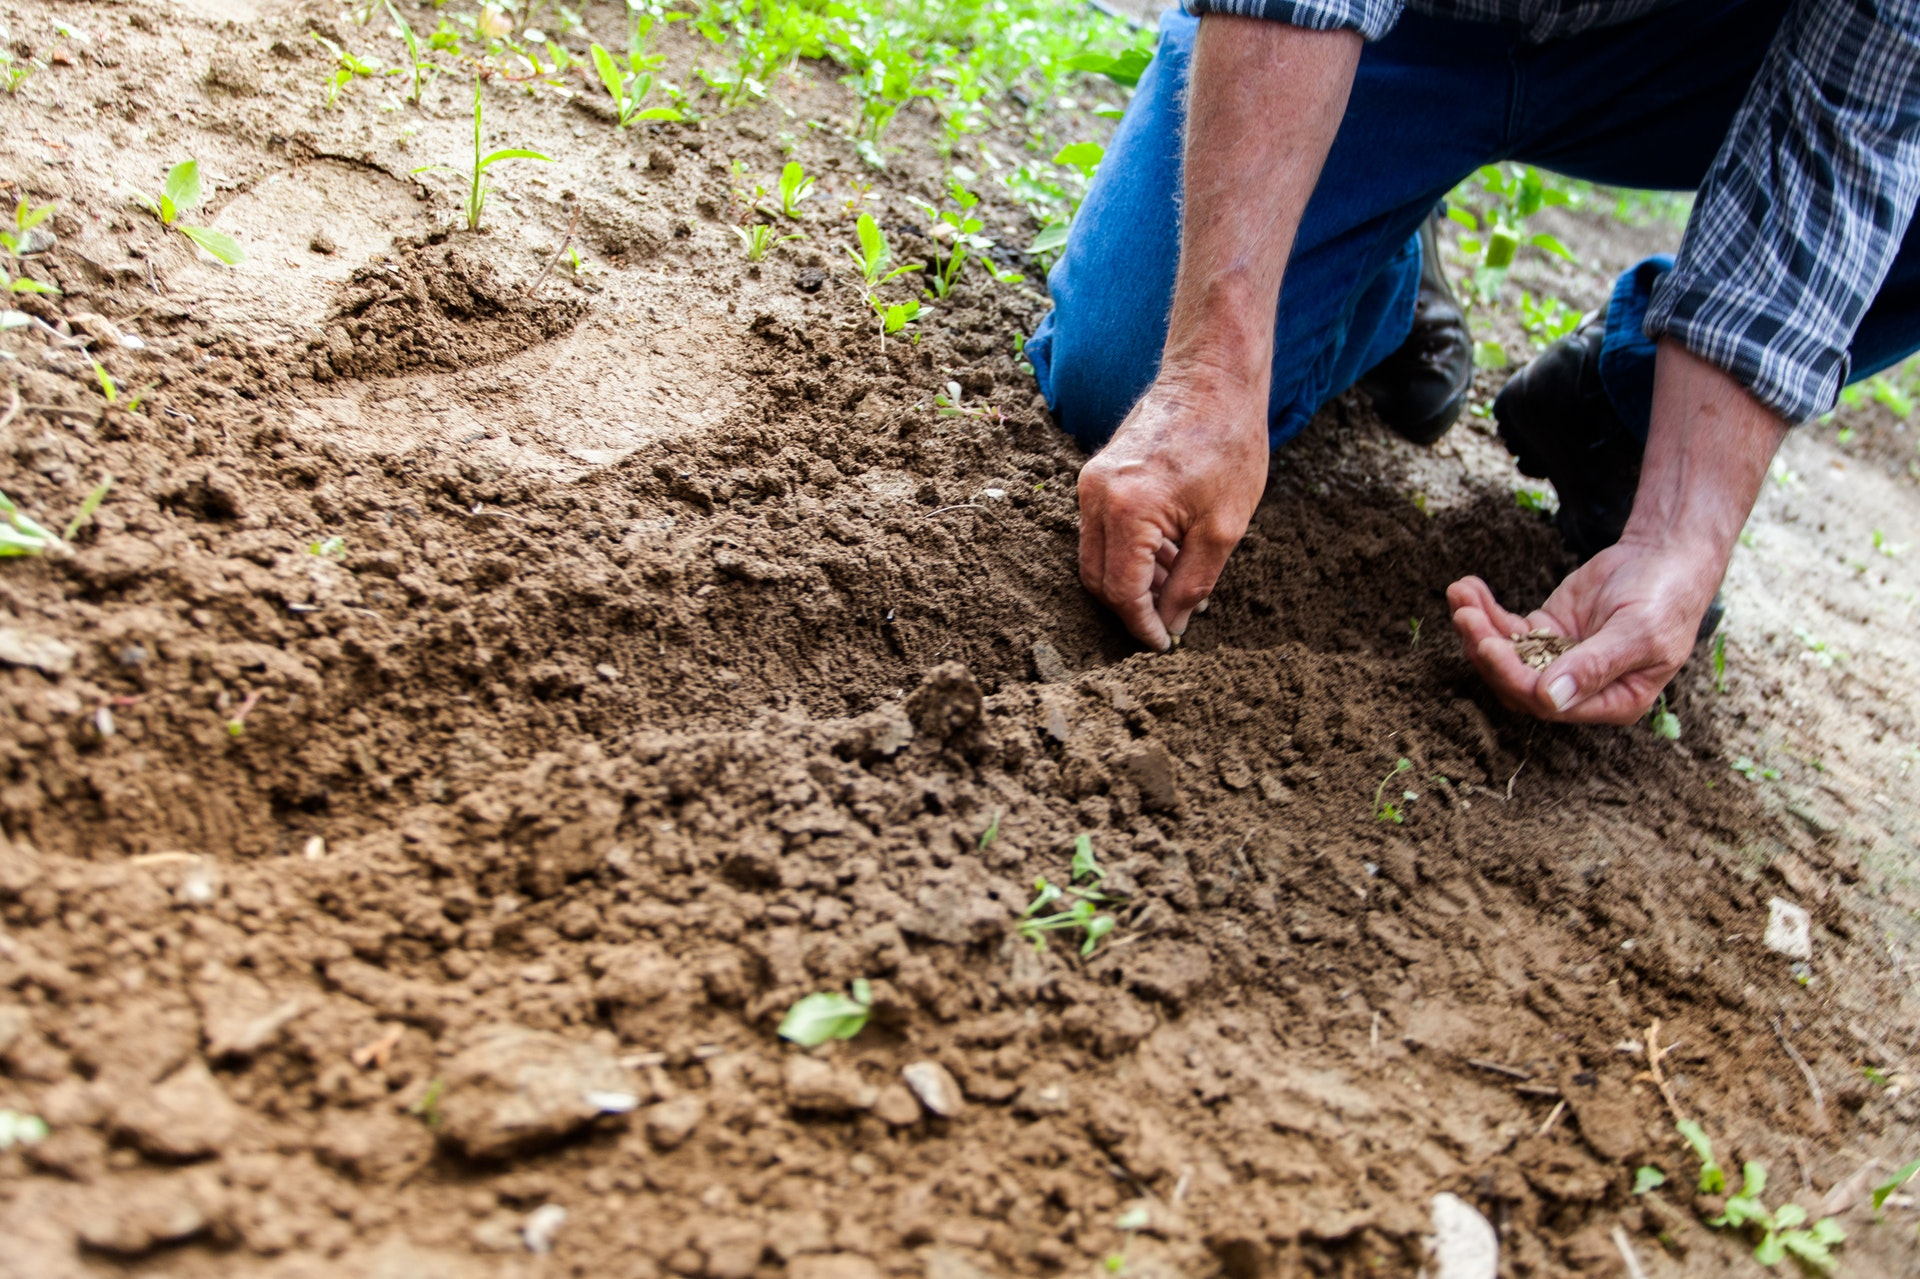 Sustainable Farming Methods and Practices